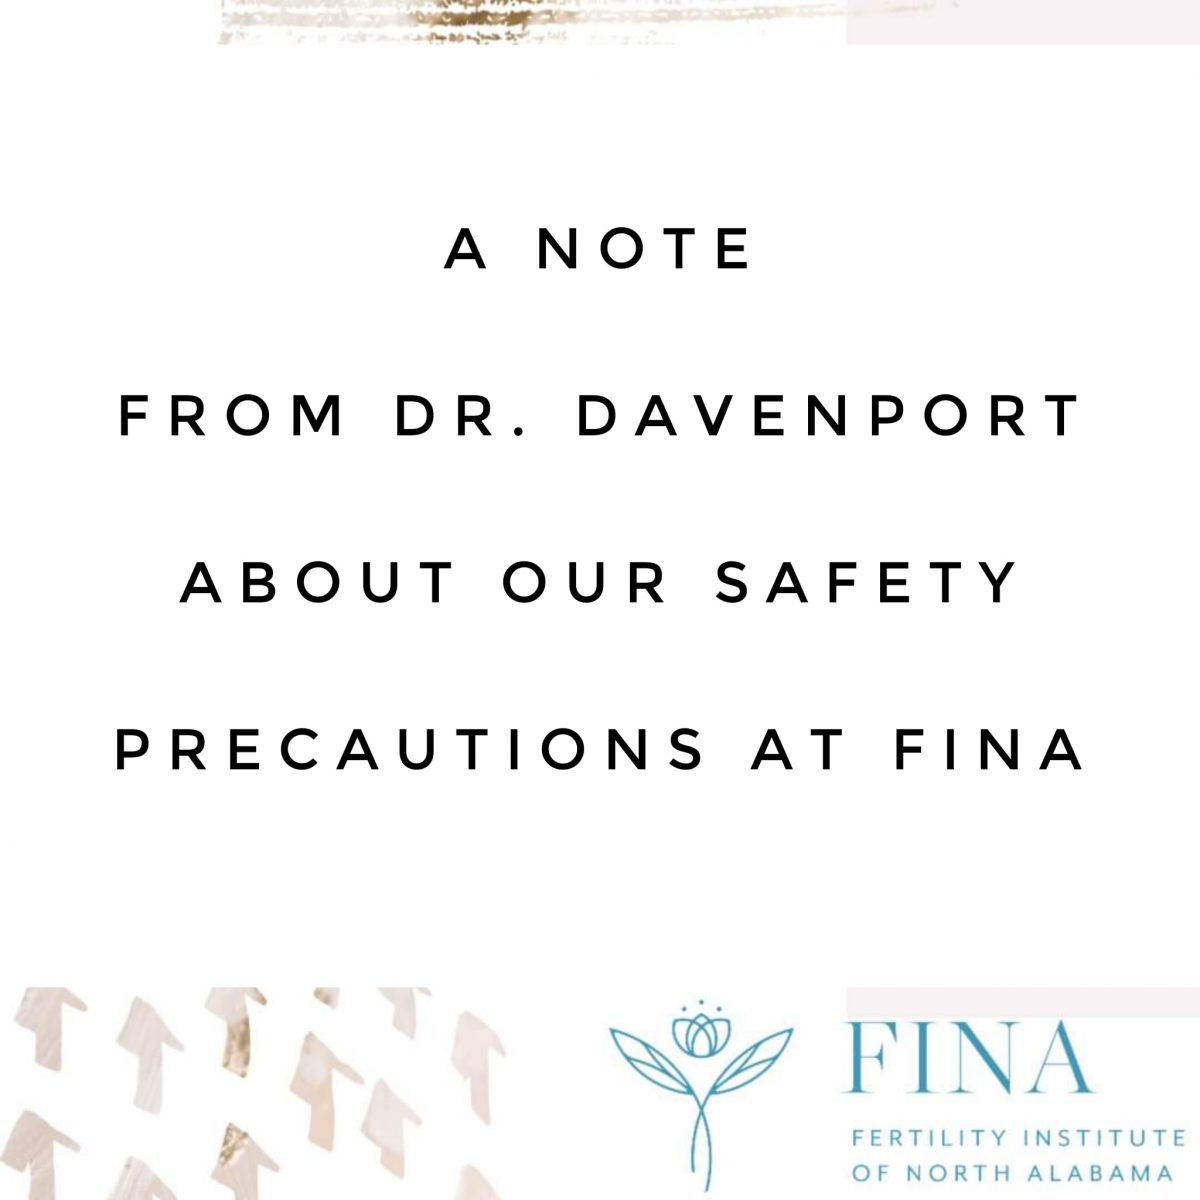 A Note from Dr. Davenport about our Safety Precautions during COVID19